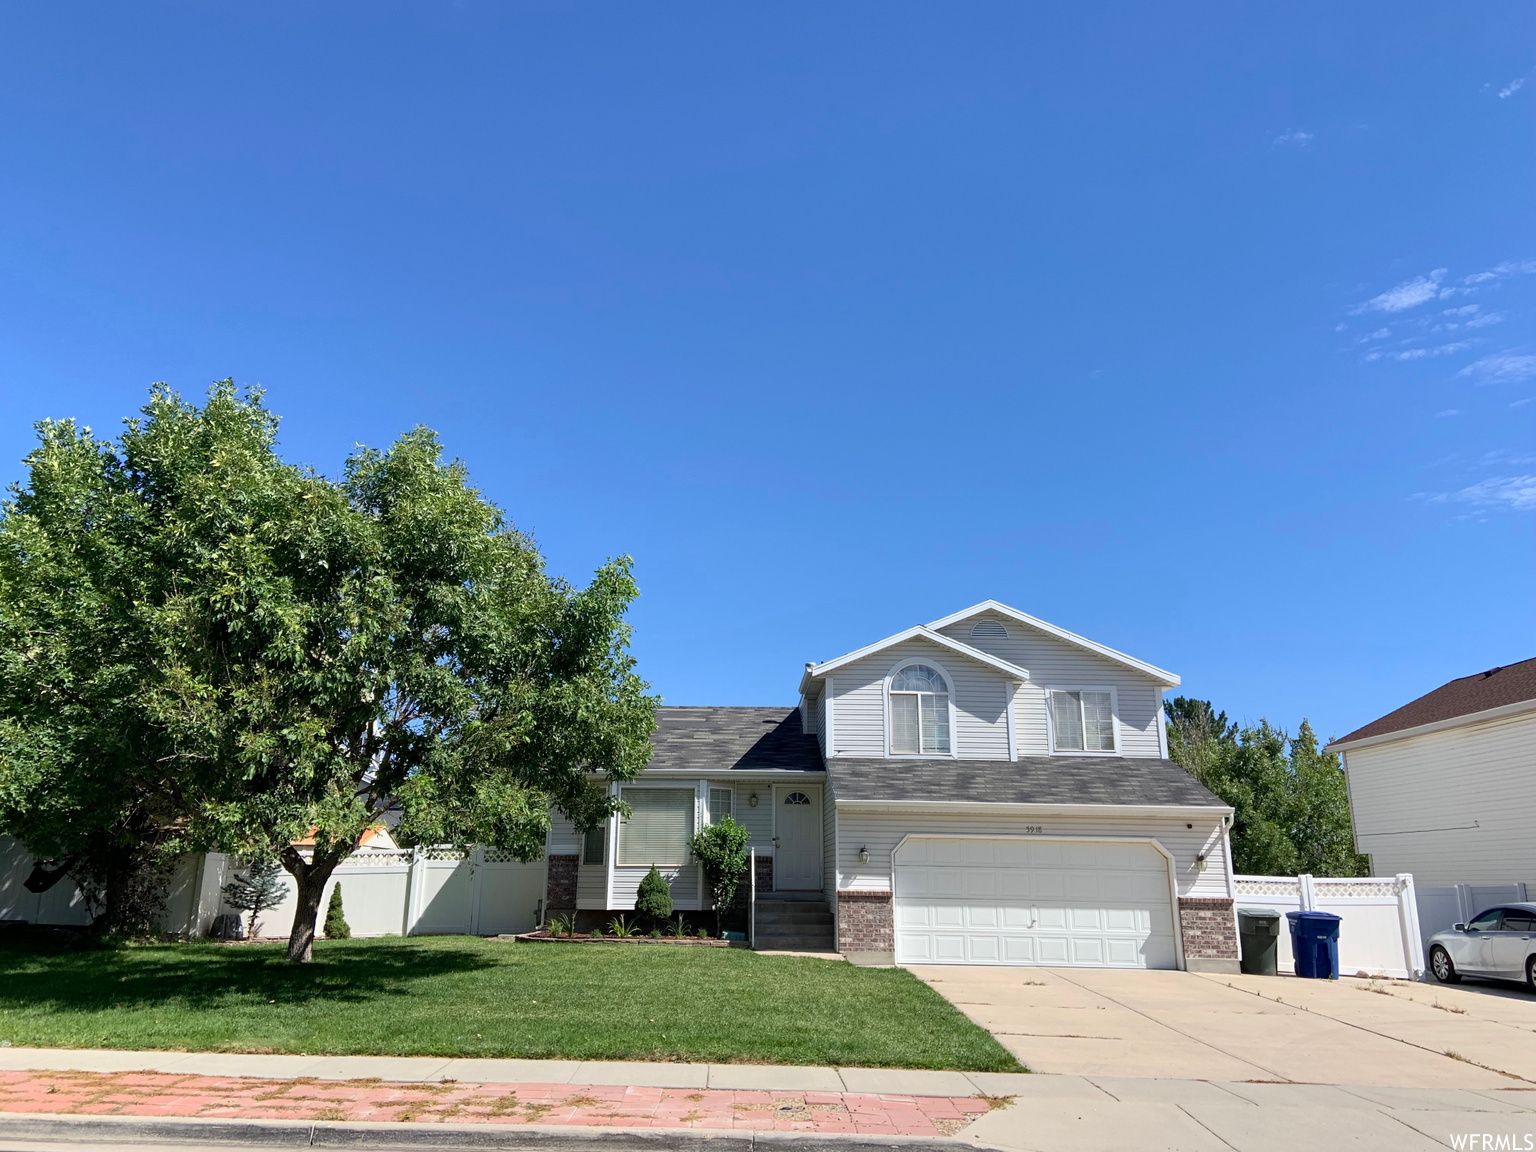 5918 W CLOVER CREEK LN, Salt Lake City UT 84118